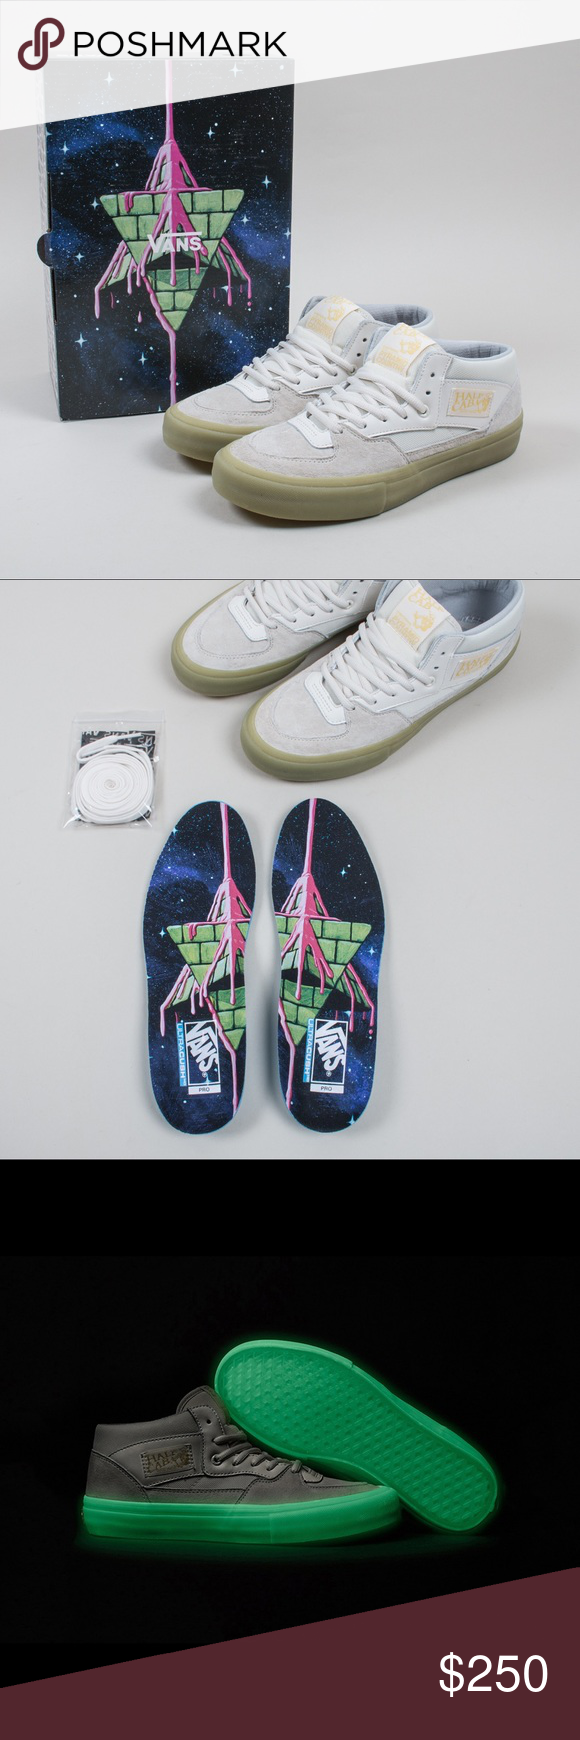 4c621e5f8ad3d4 1 250 NEW Vans x Pyramid Country Glow in the Dark New Rare 1 of 250 VANS X  Pyramid Country Half Cab Pro shoes Size 8 Caballero IN HAND!!!